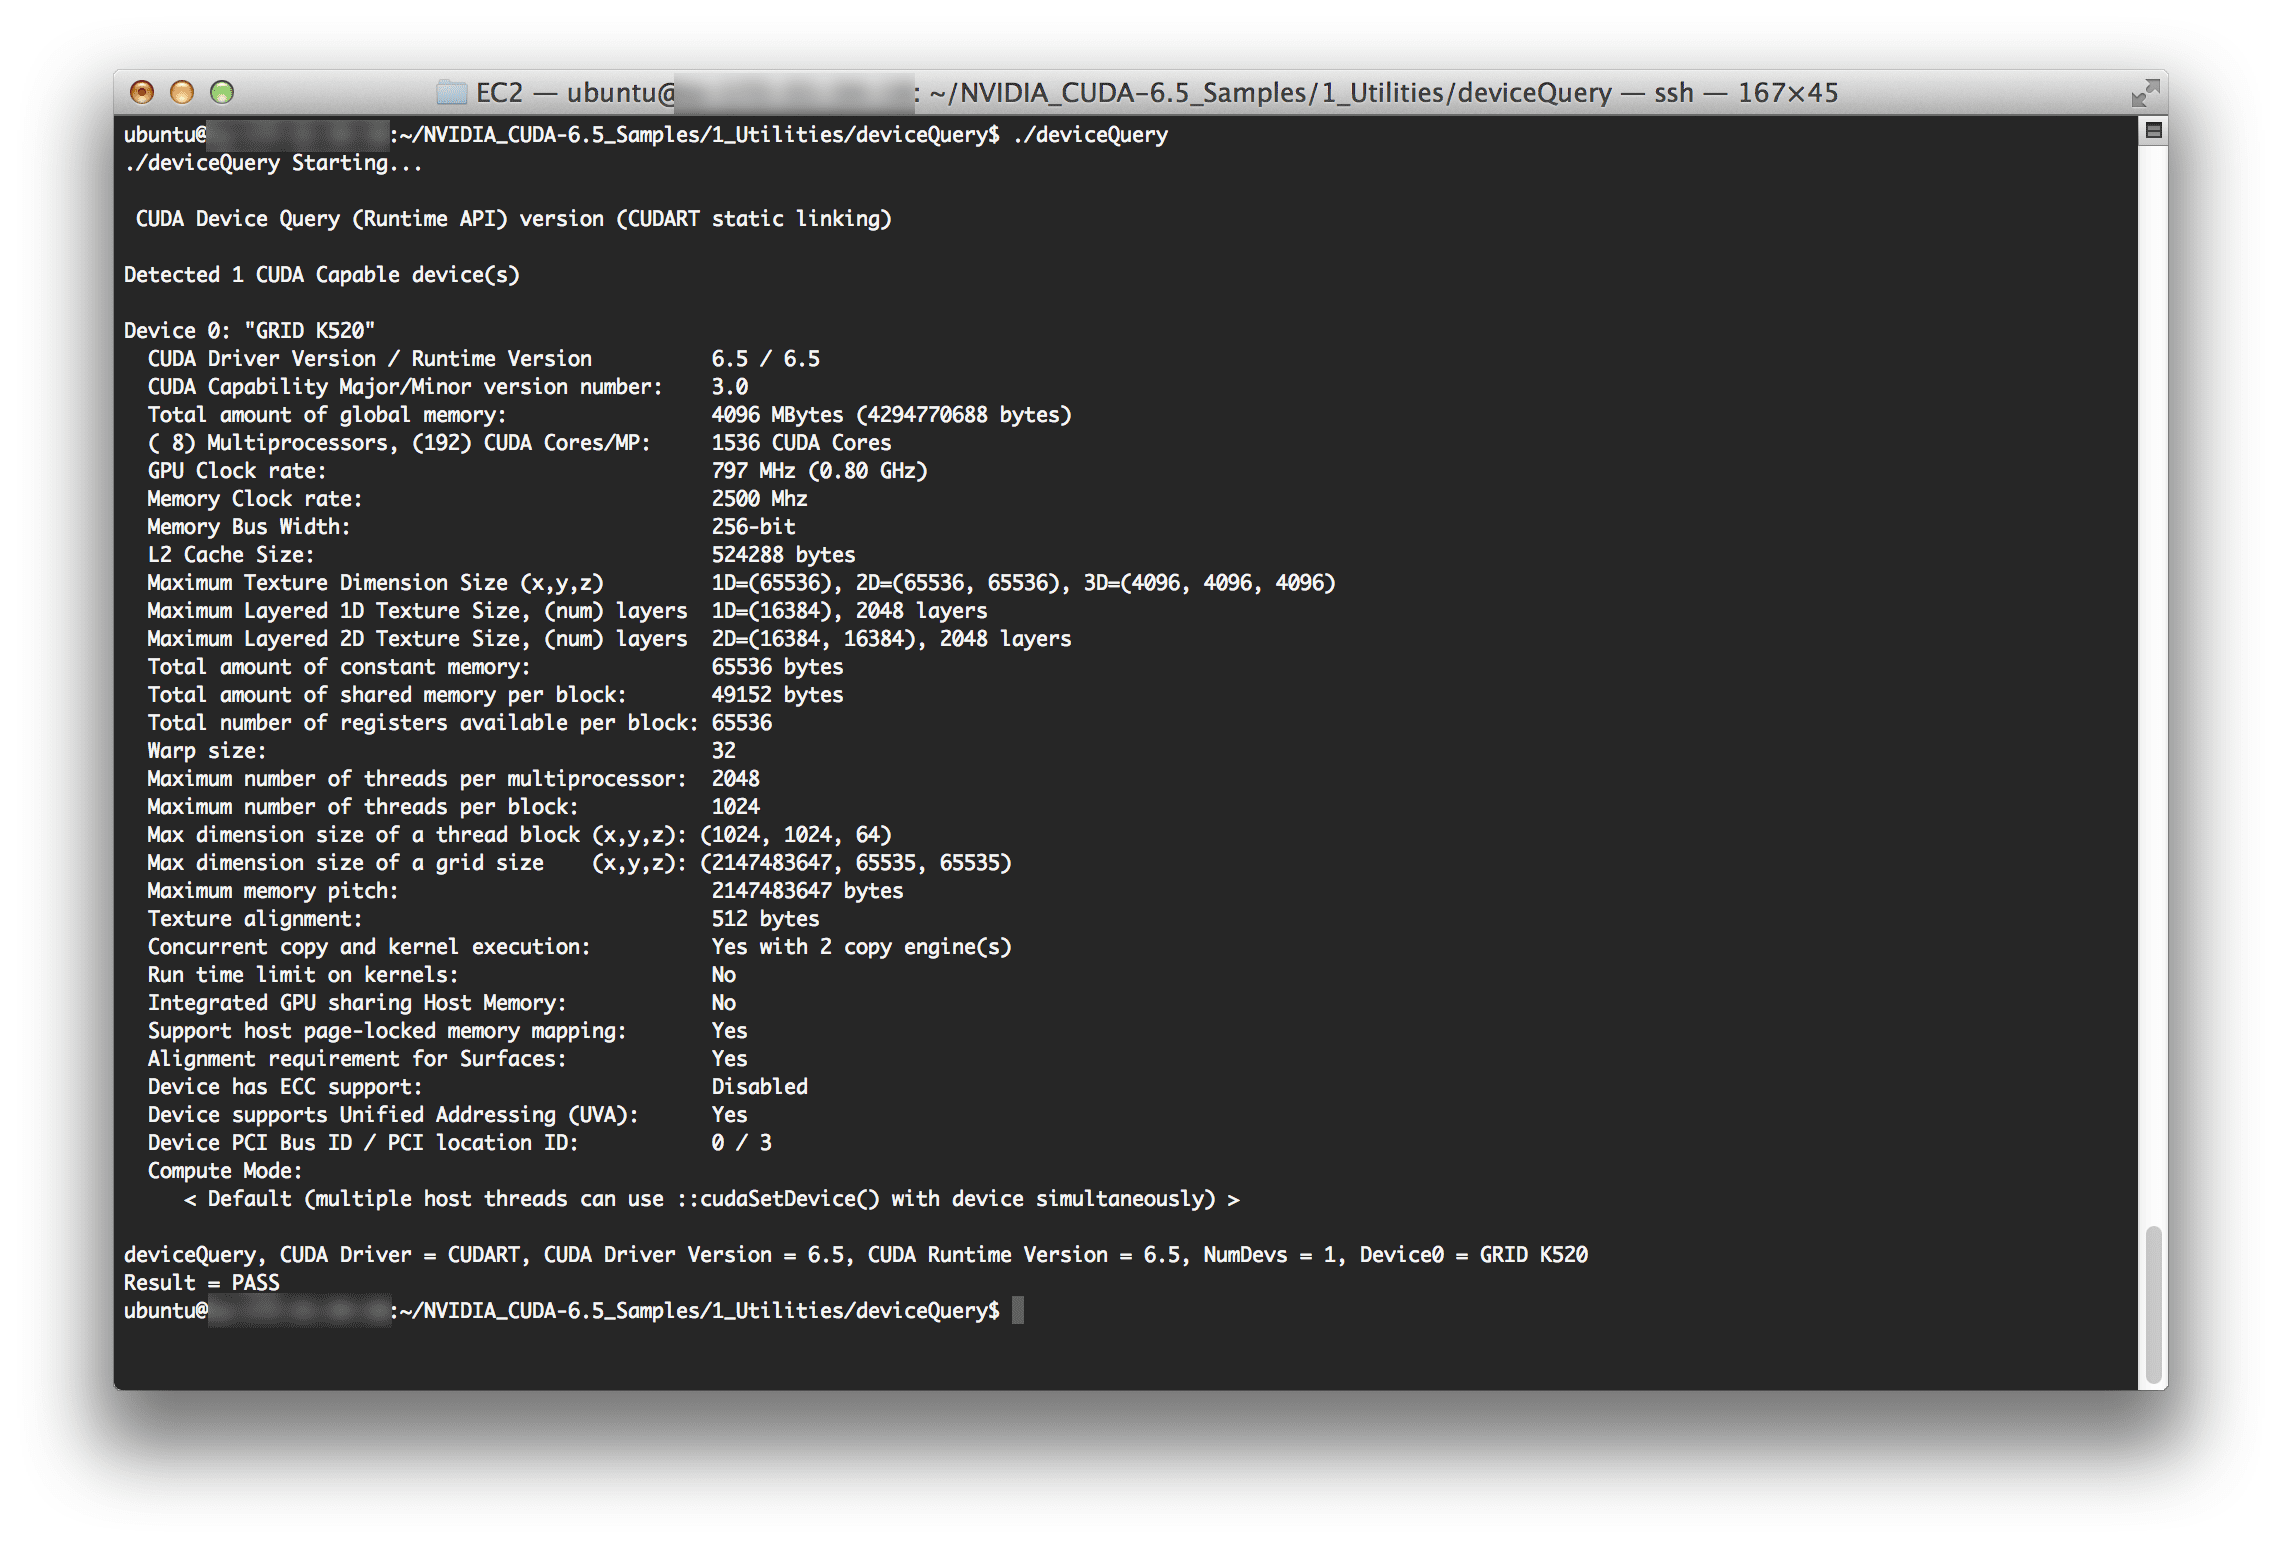 Running deviceQuery on the g2.2xlarge EC2 instance